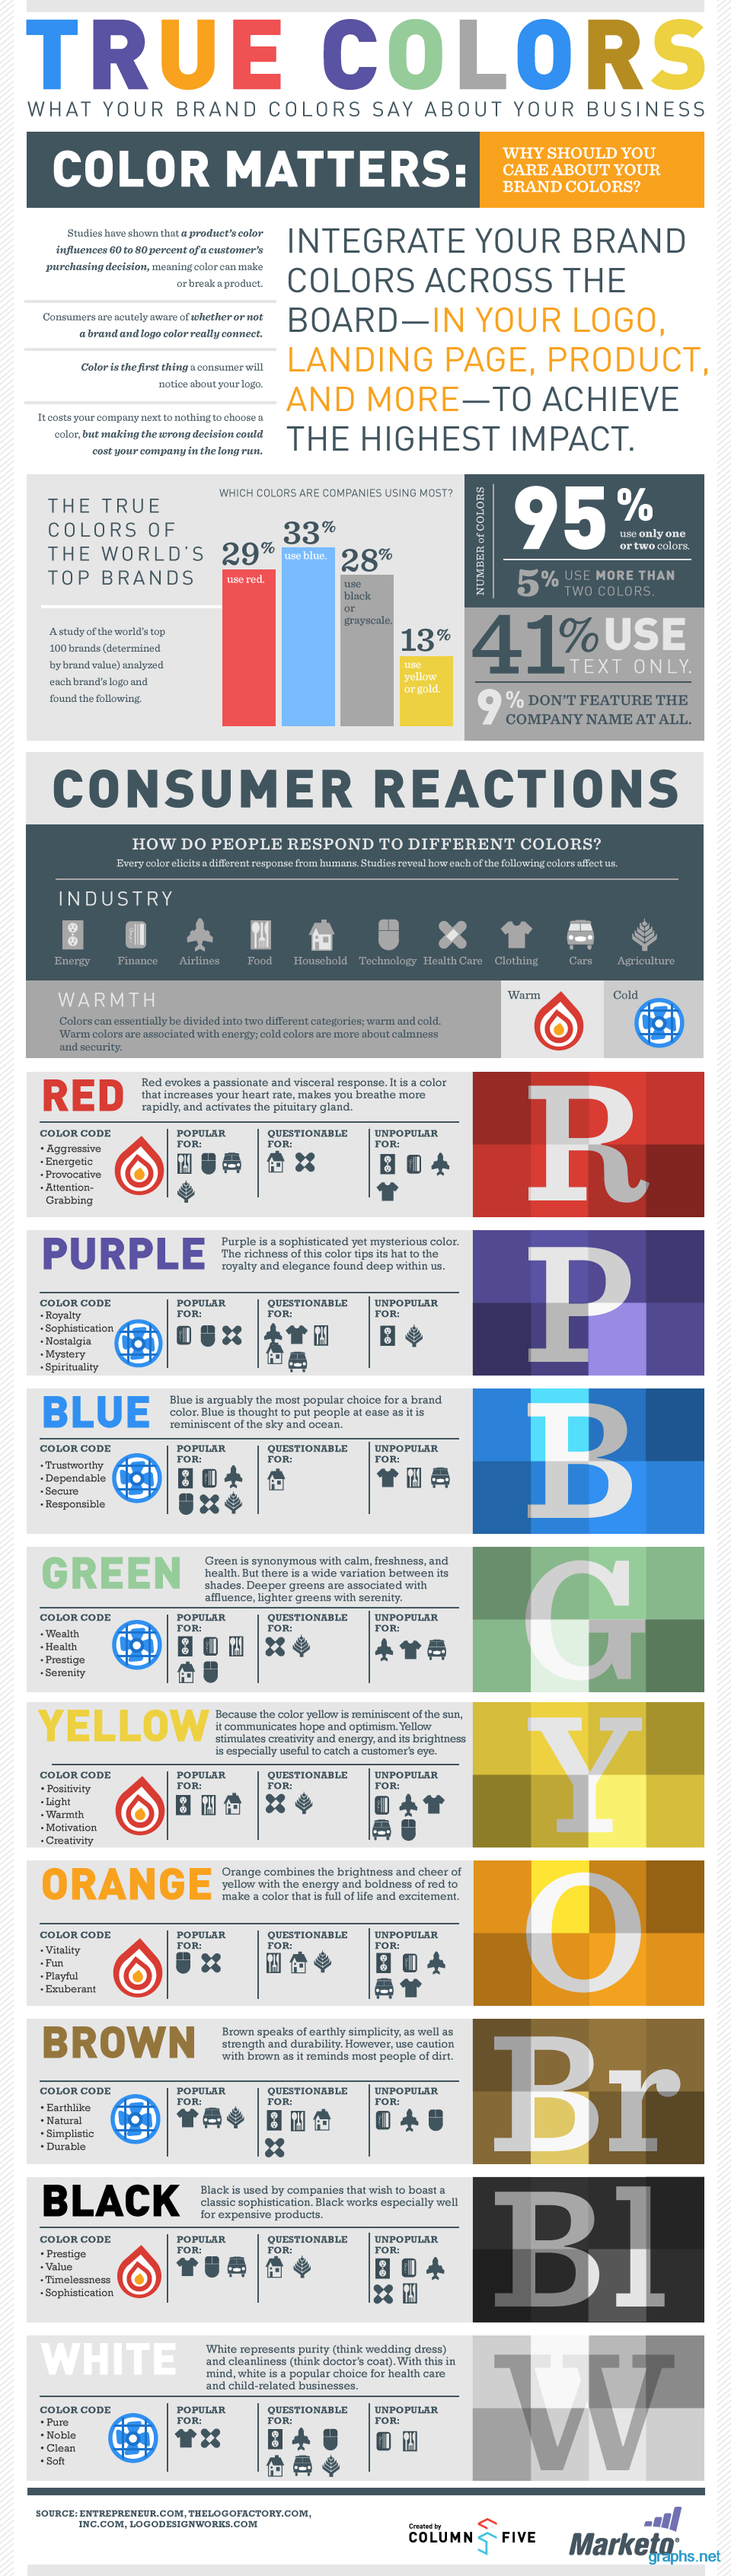 Importance of Brand Colors in Business